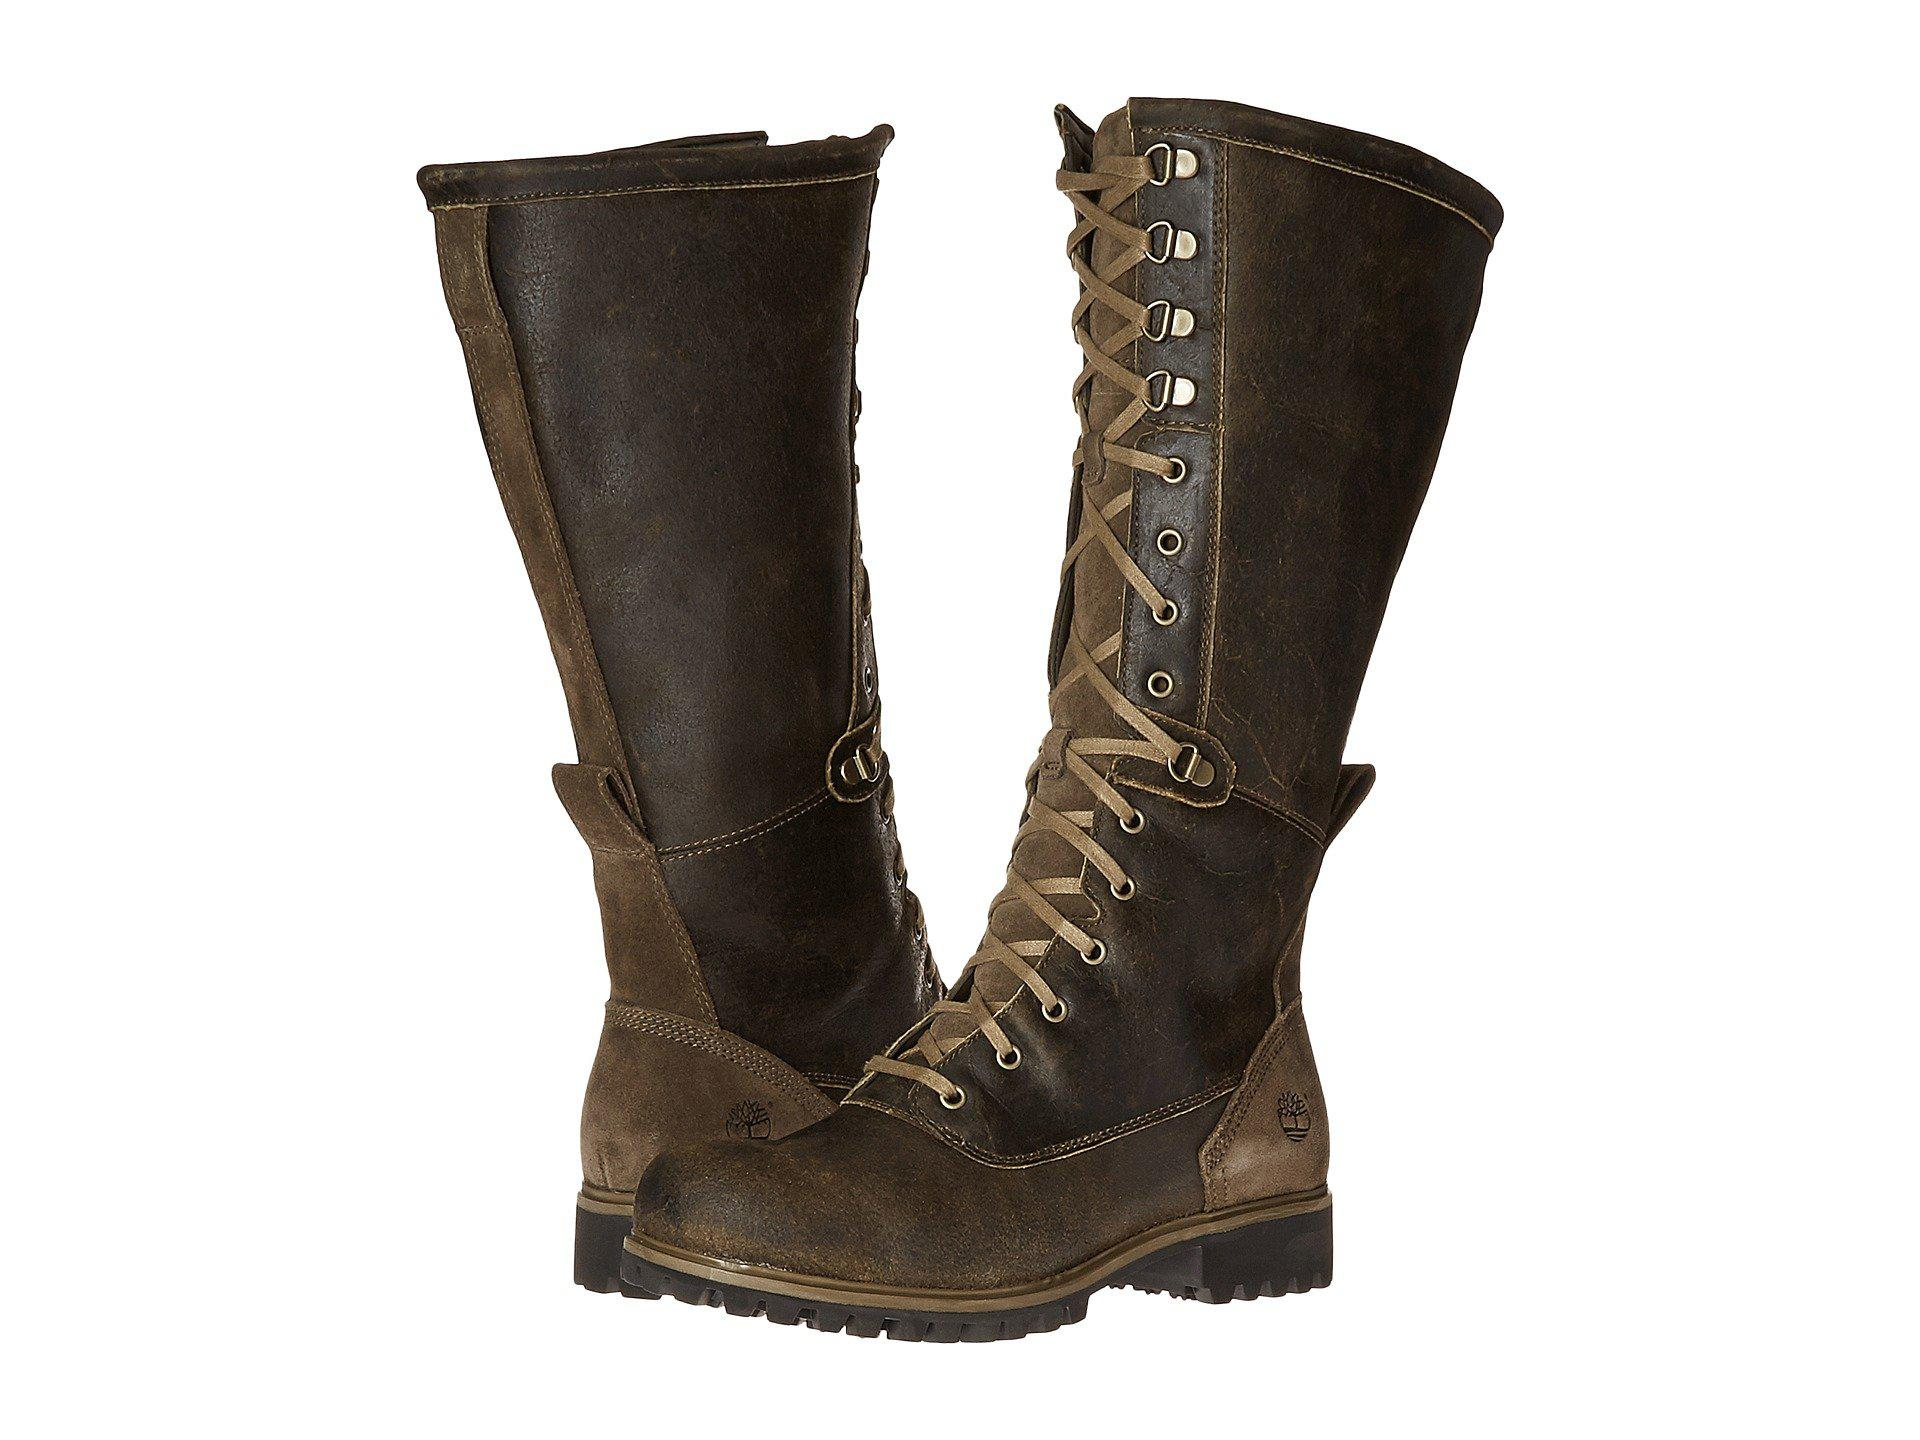 aecb0143f04e Lyst - Timberland Wheelwright Tall Lace Waterproof Boot in Brown